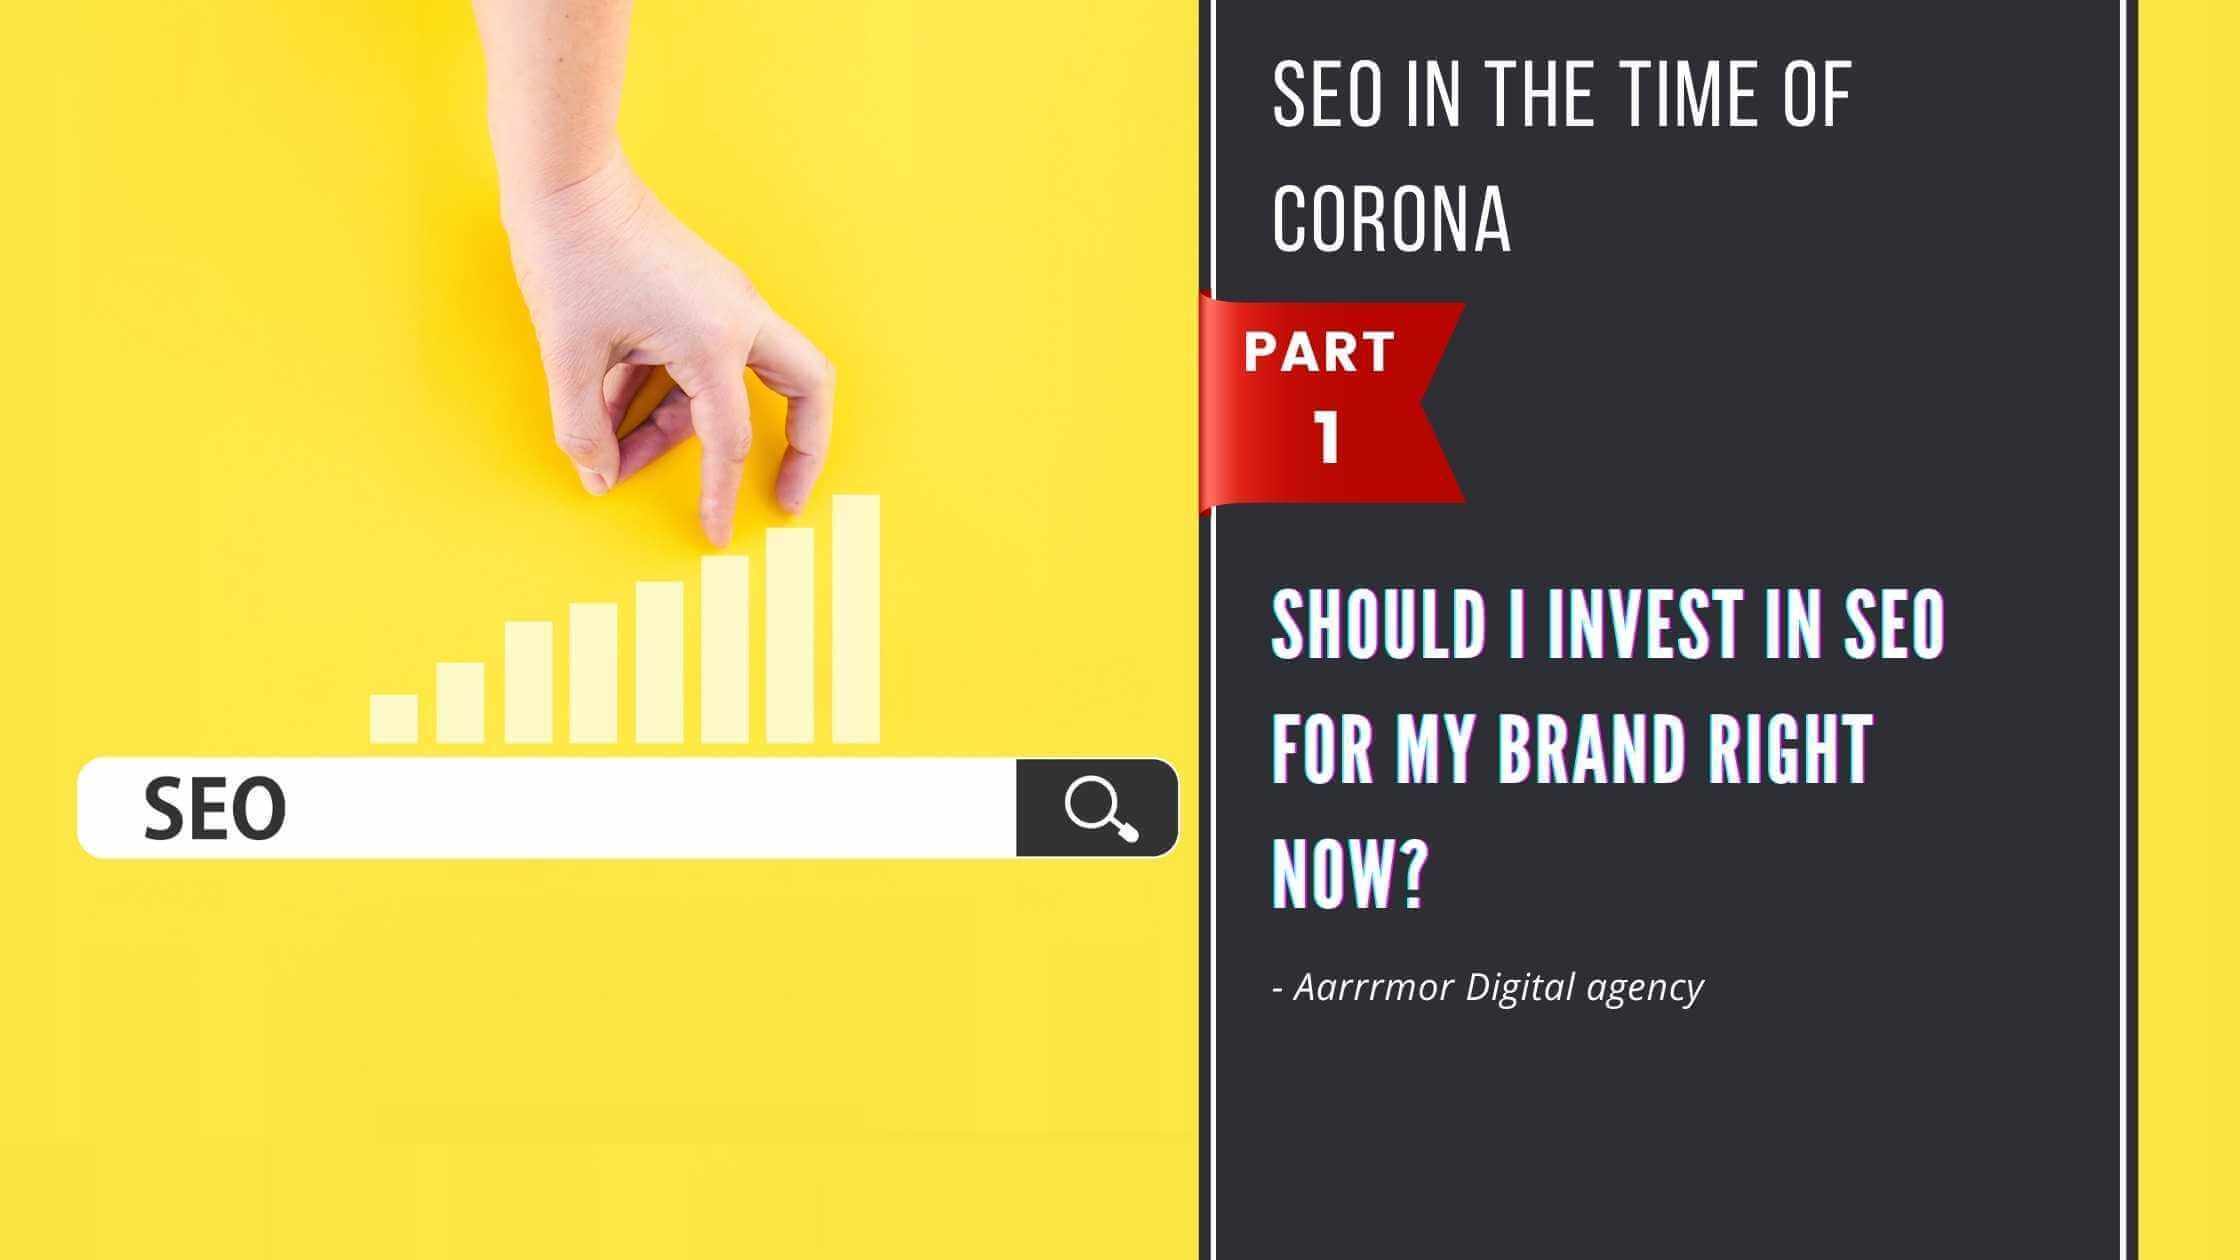 Should I invest in SEO for my brand right now? (Part 1)